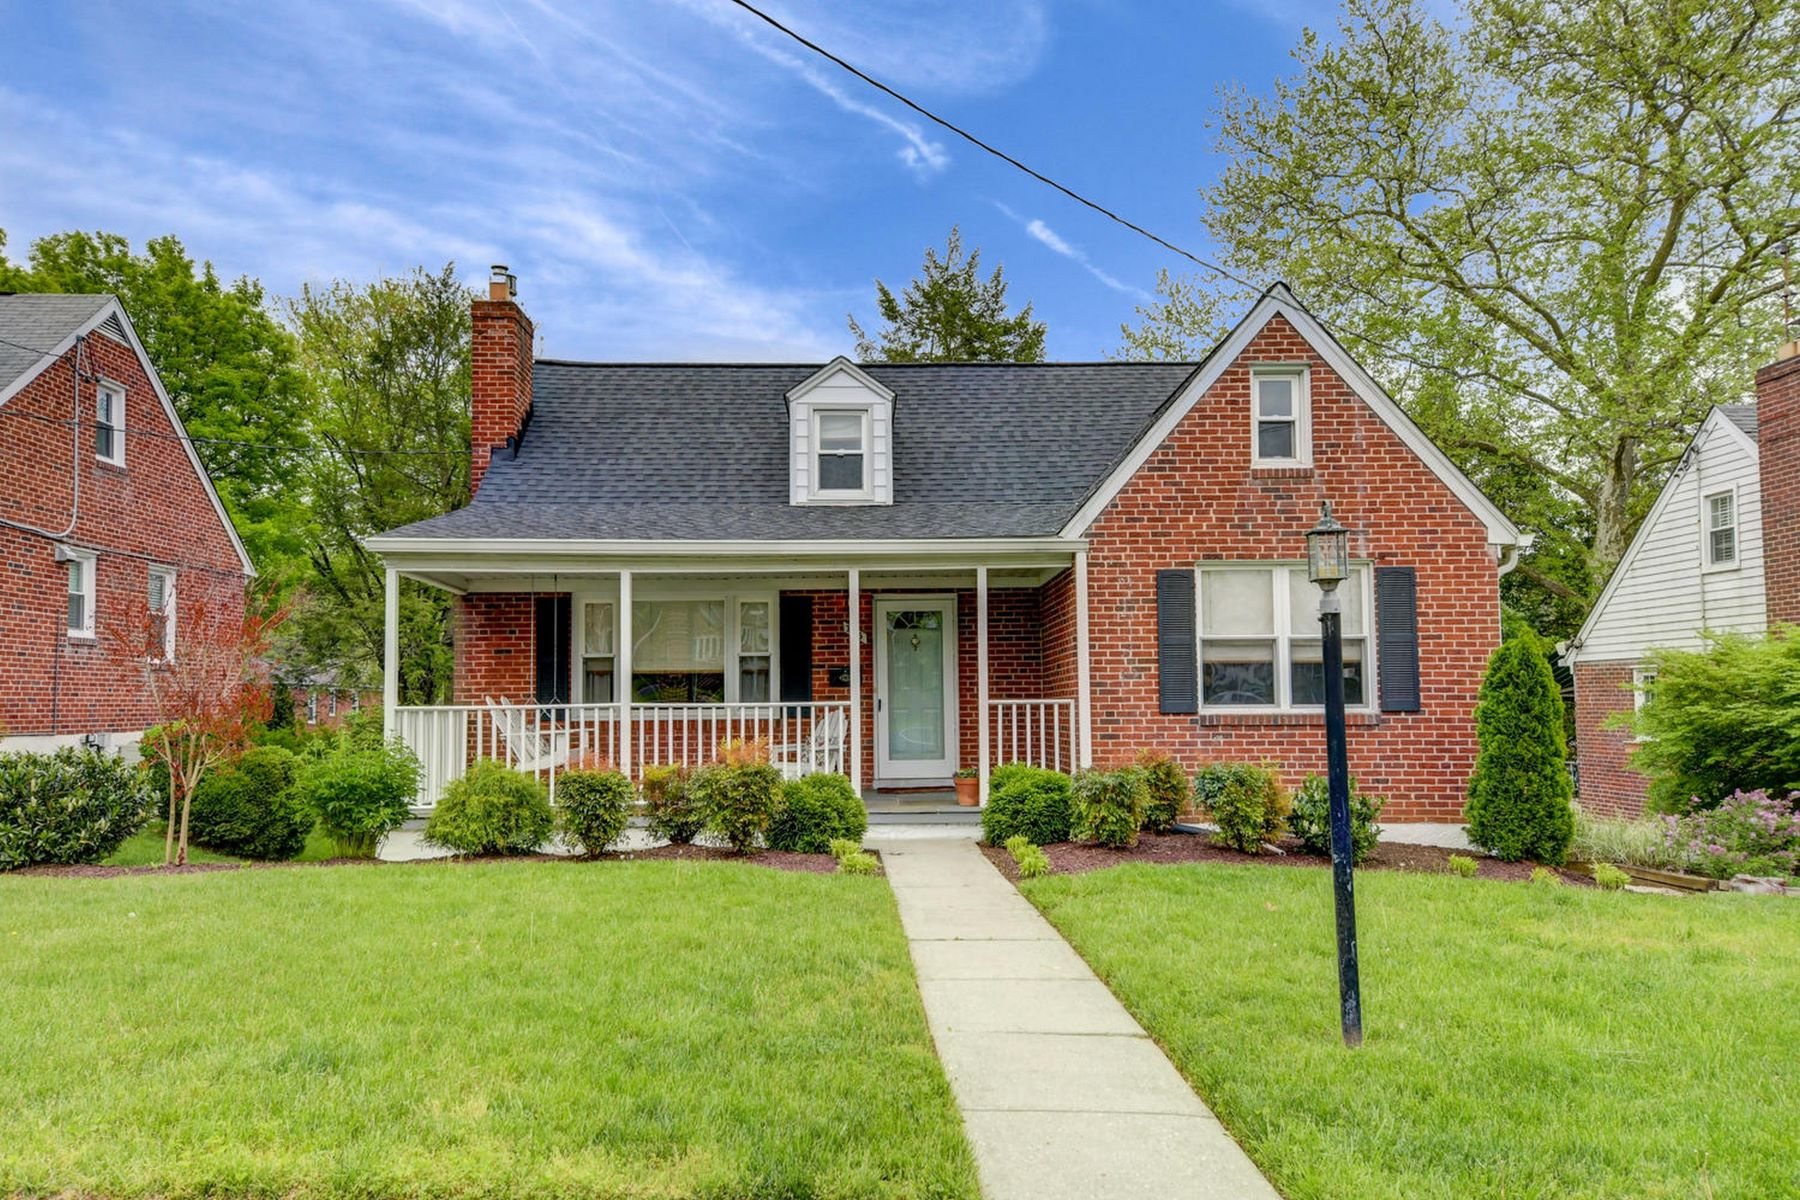 single family homes for Active at Small Town American Dream 305 Waveland Catonsville, Maryland 21228 United States